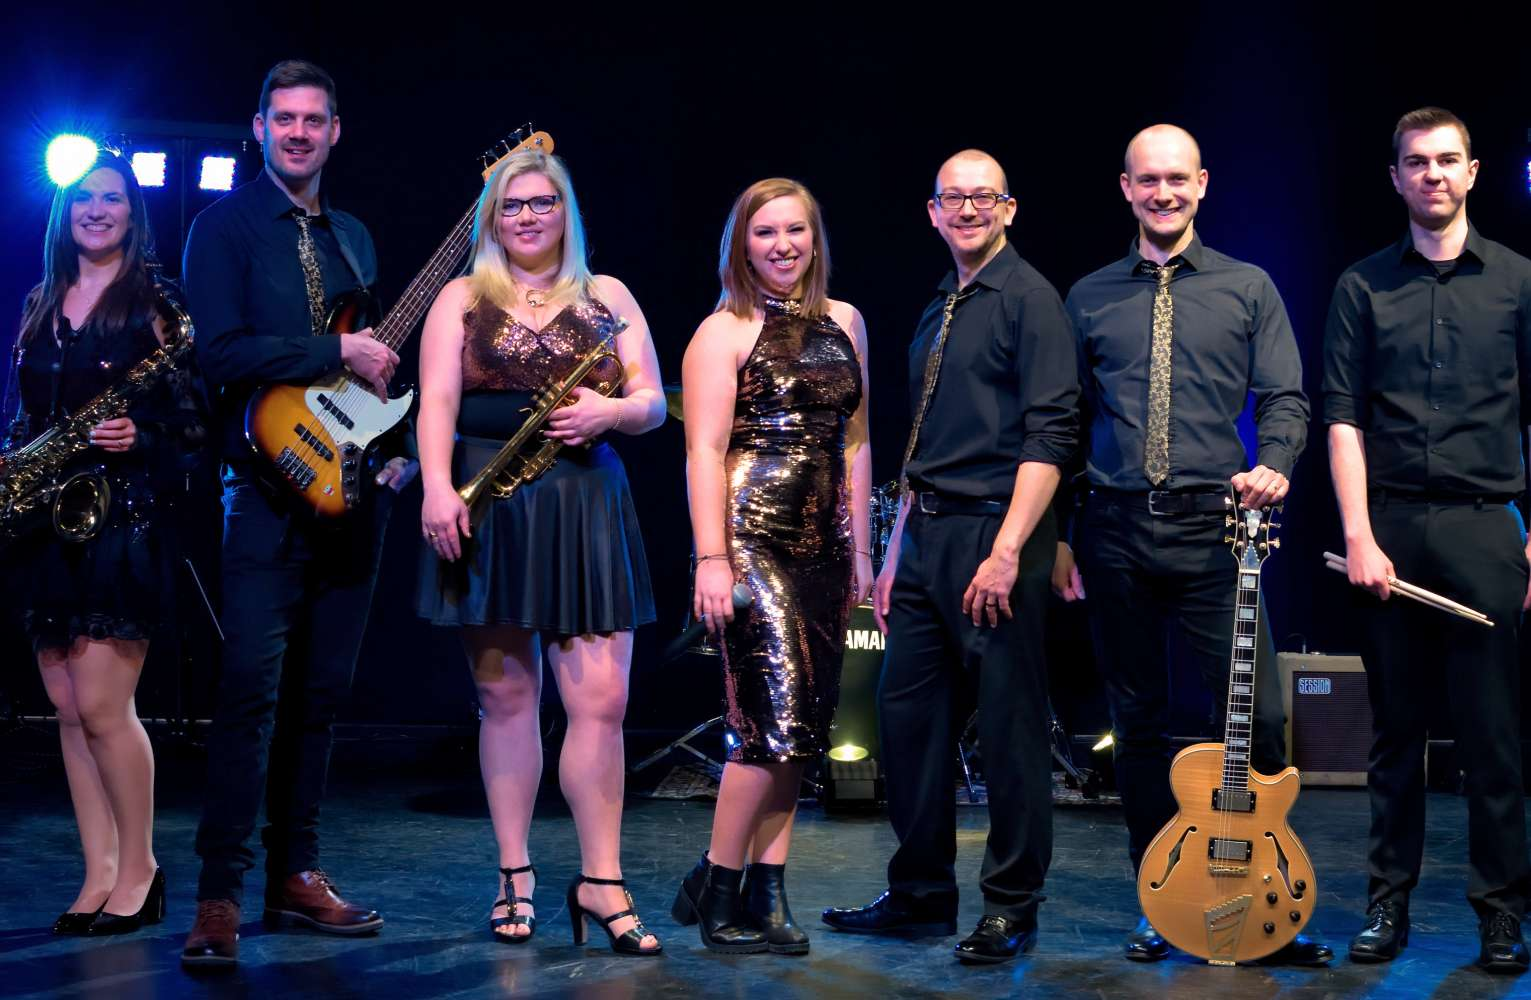 The Recollections Rock pop band For Hire